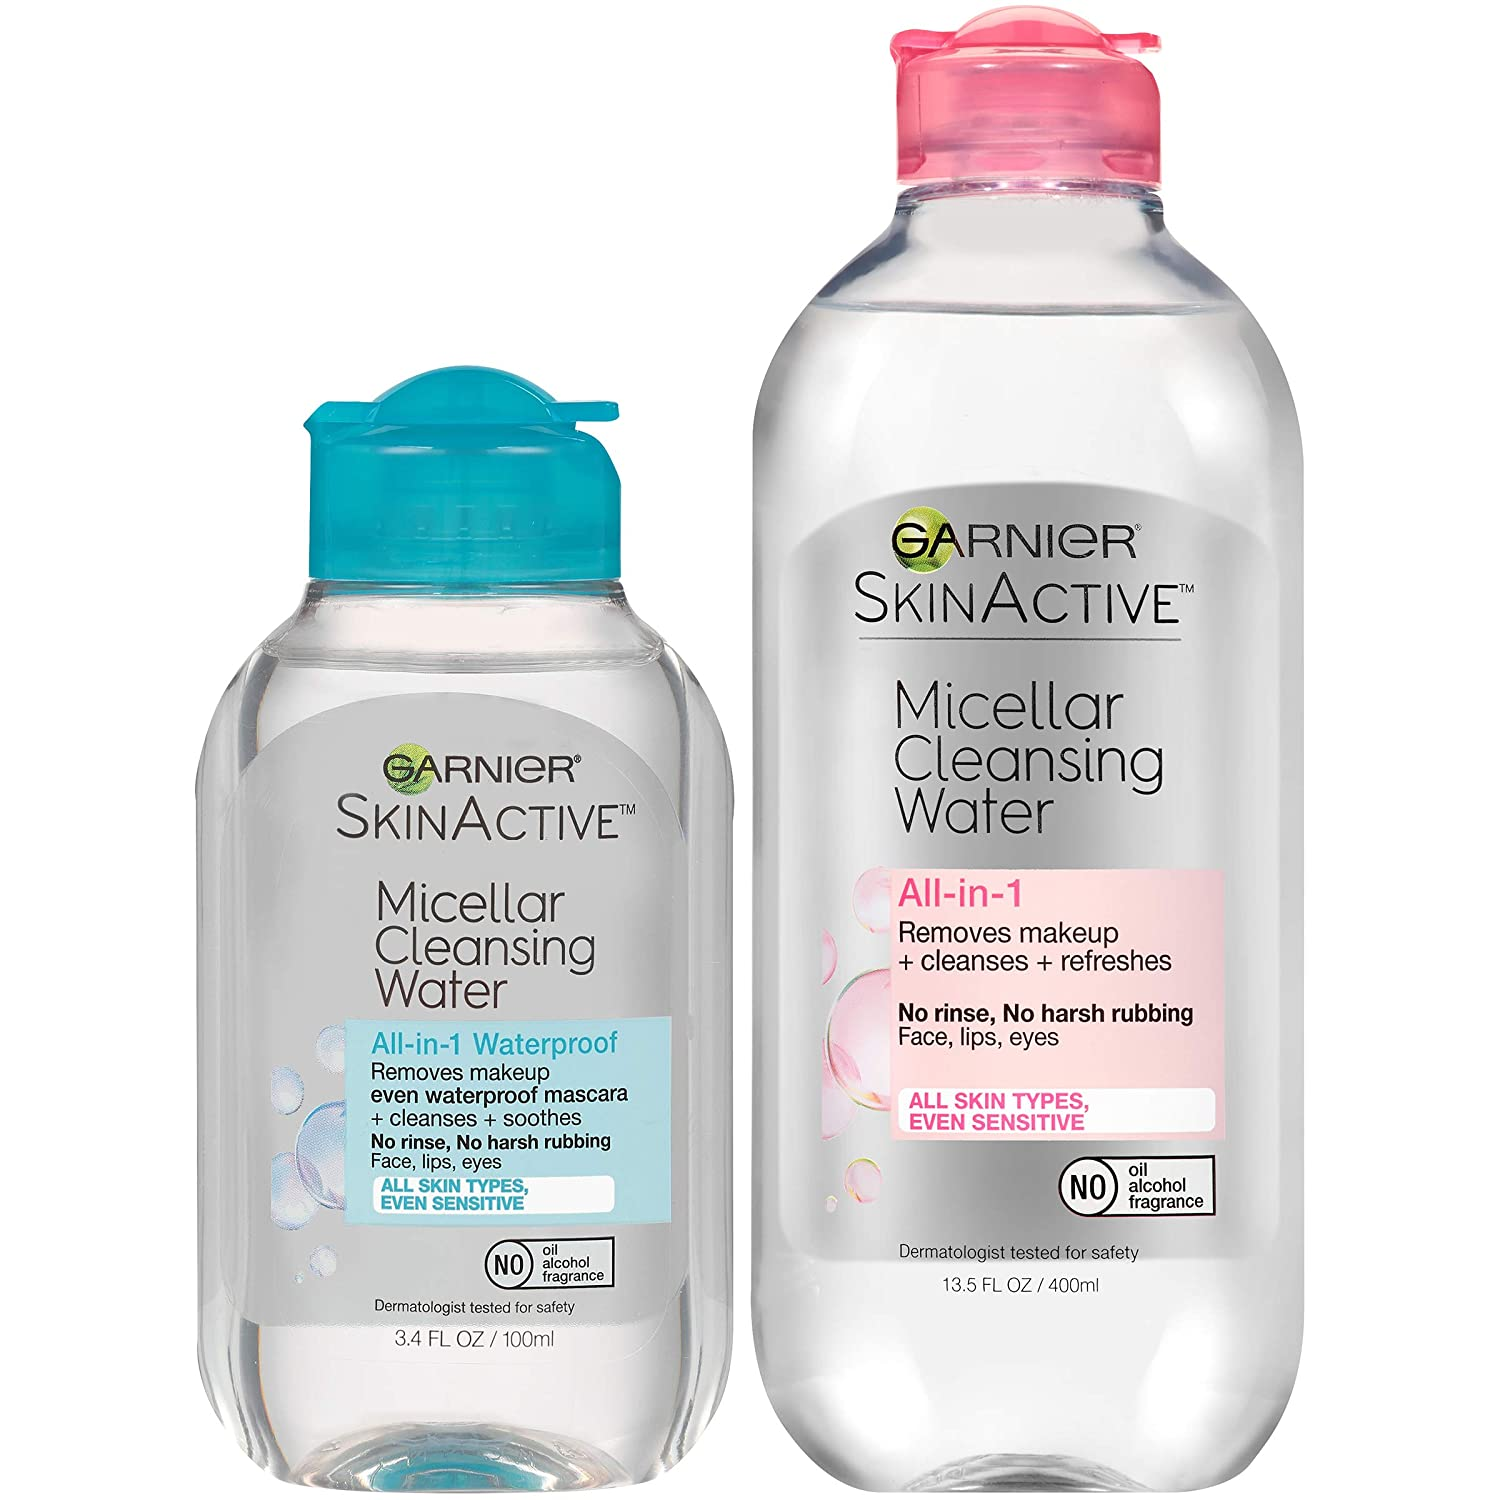 Garnier SkinActive Micellar Cleansing Water, For All Skin Types, 13.5 fl oz + Micellar Cleansing Water, For Waterproof Makeup, 3.4 fl oz